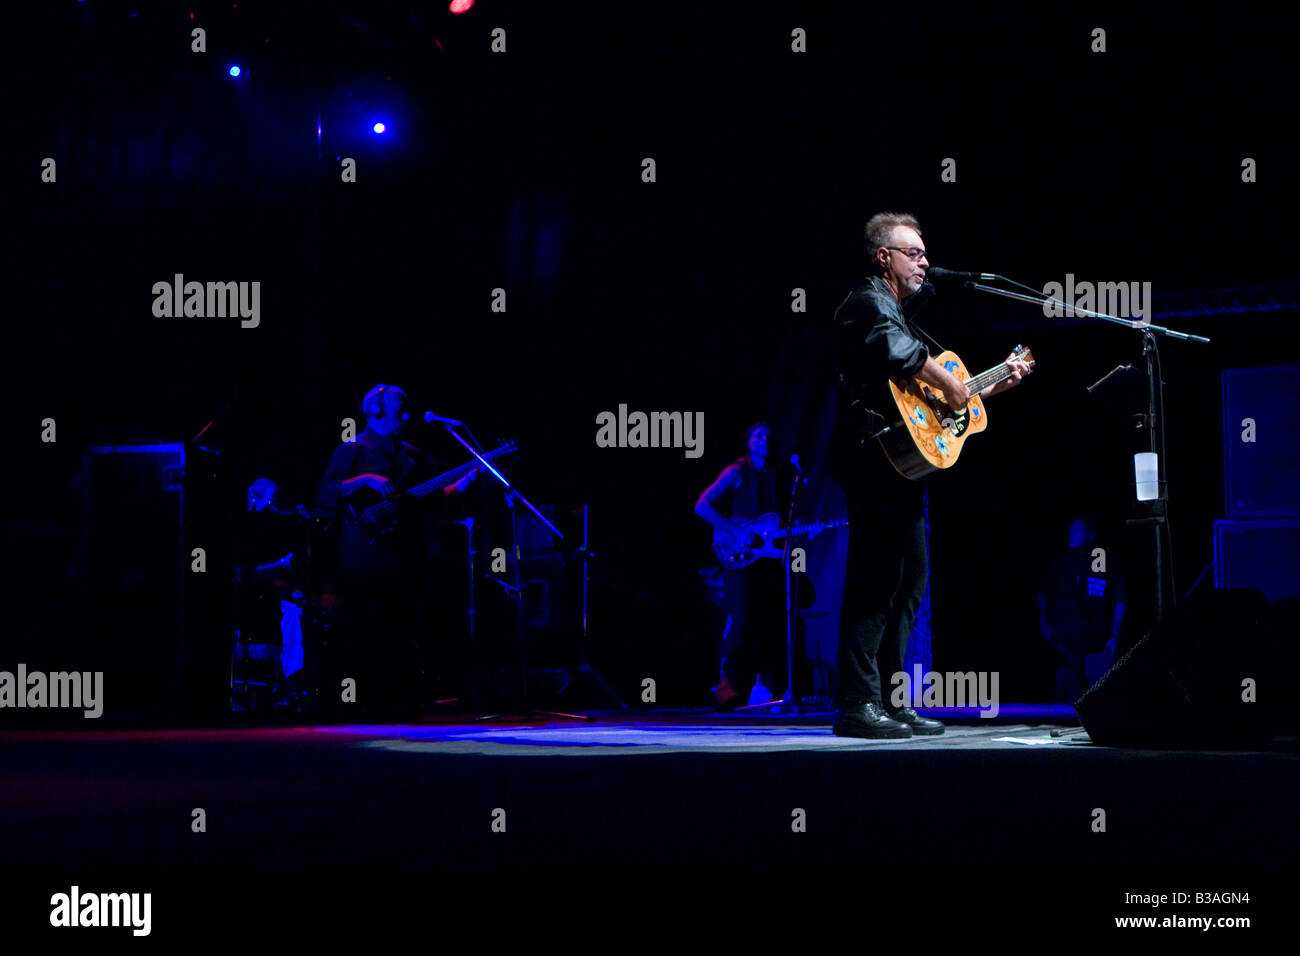 Argentinian folk musician Leon Gieco in a concert in Cordoba Argentina Stock Photo